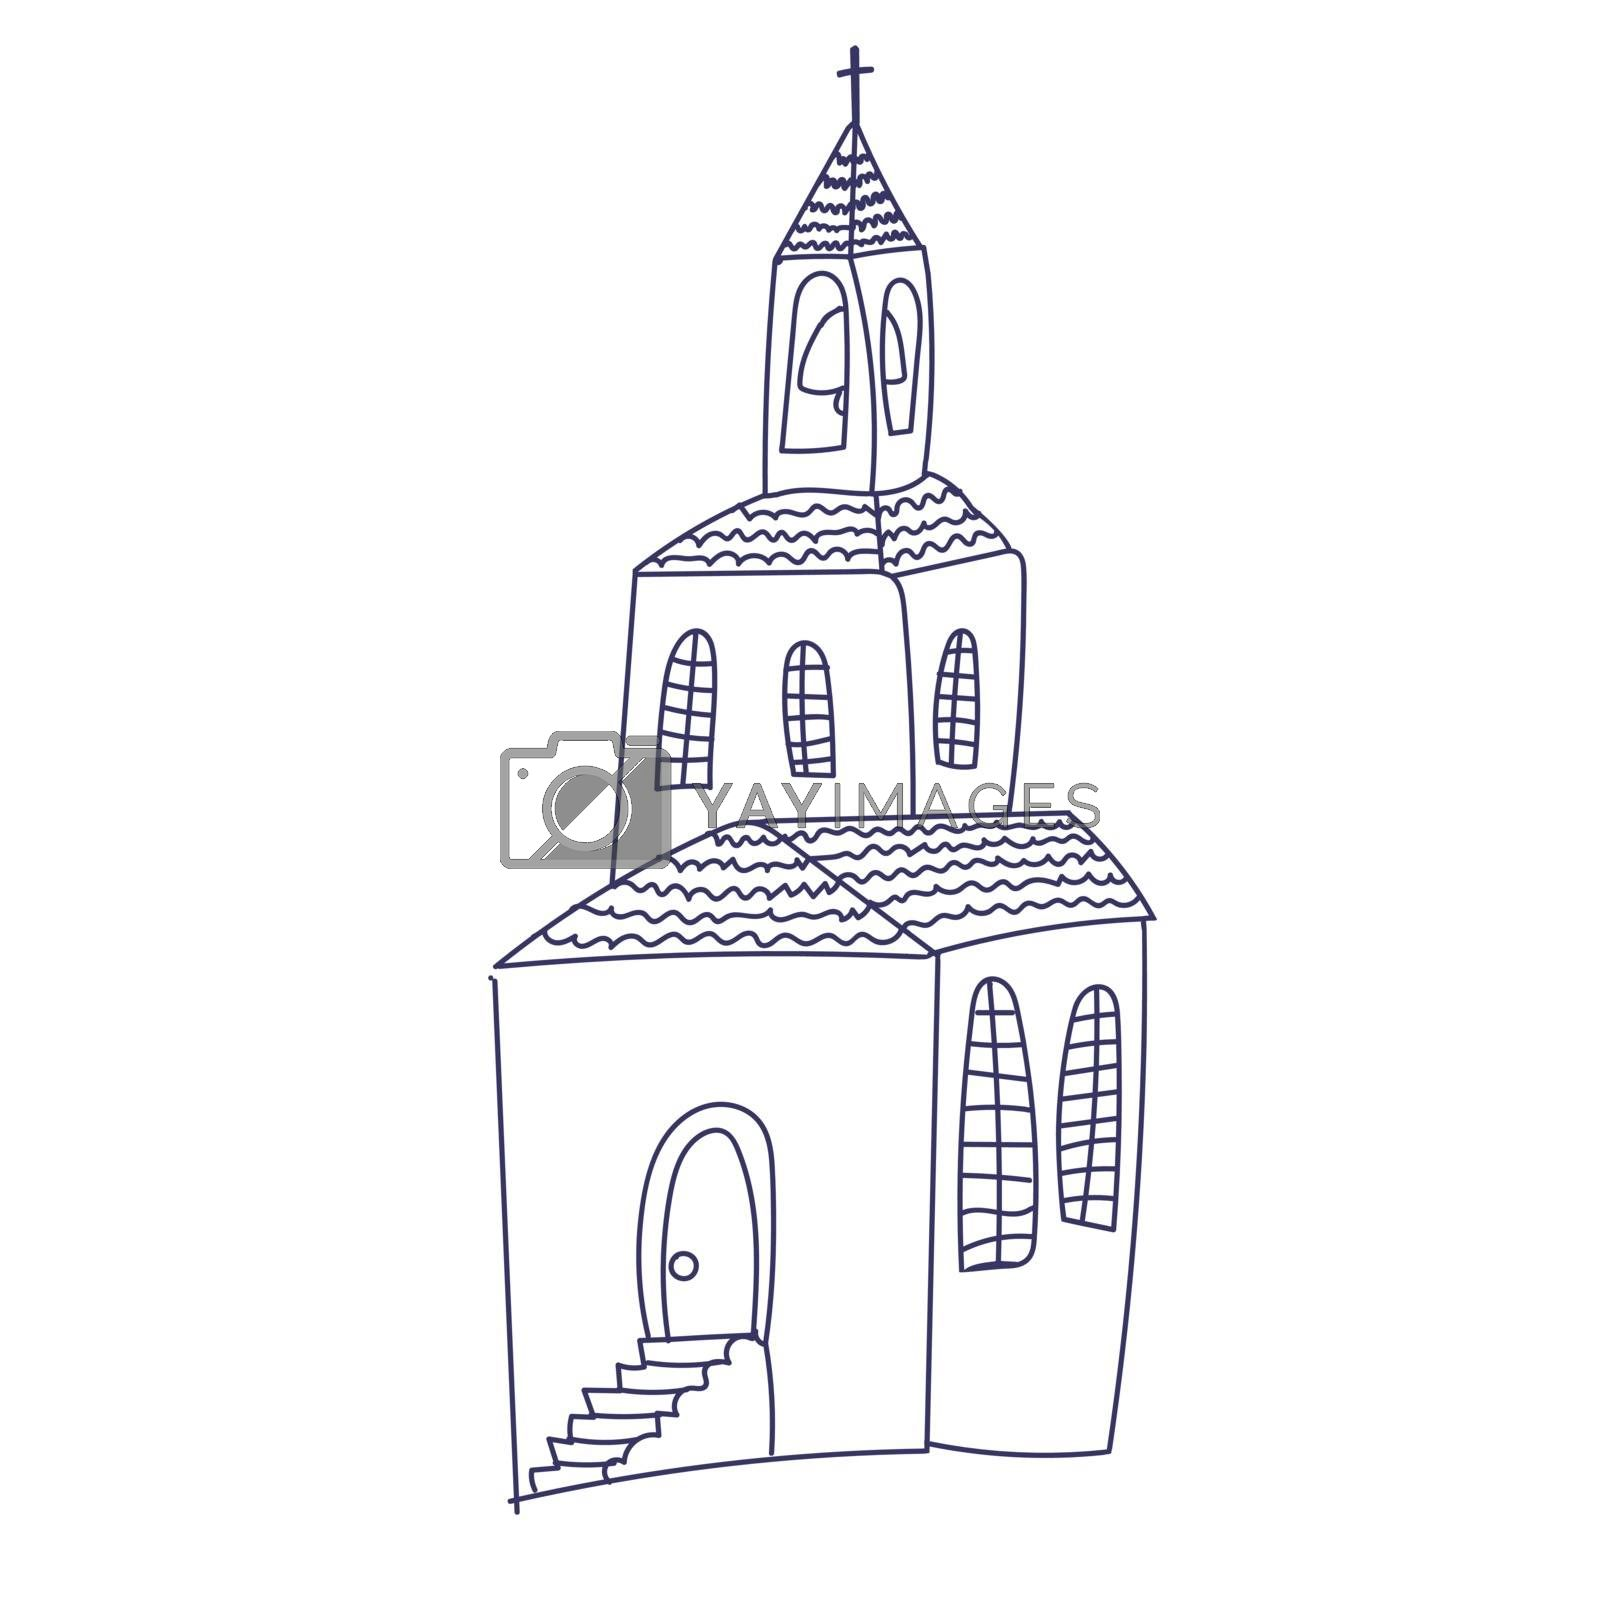 Hand drawn doodle Christian building church icon with Catholic cross Vector illustration sketchy traditional symbol Cute cartoon religious concept element.